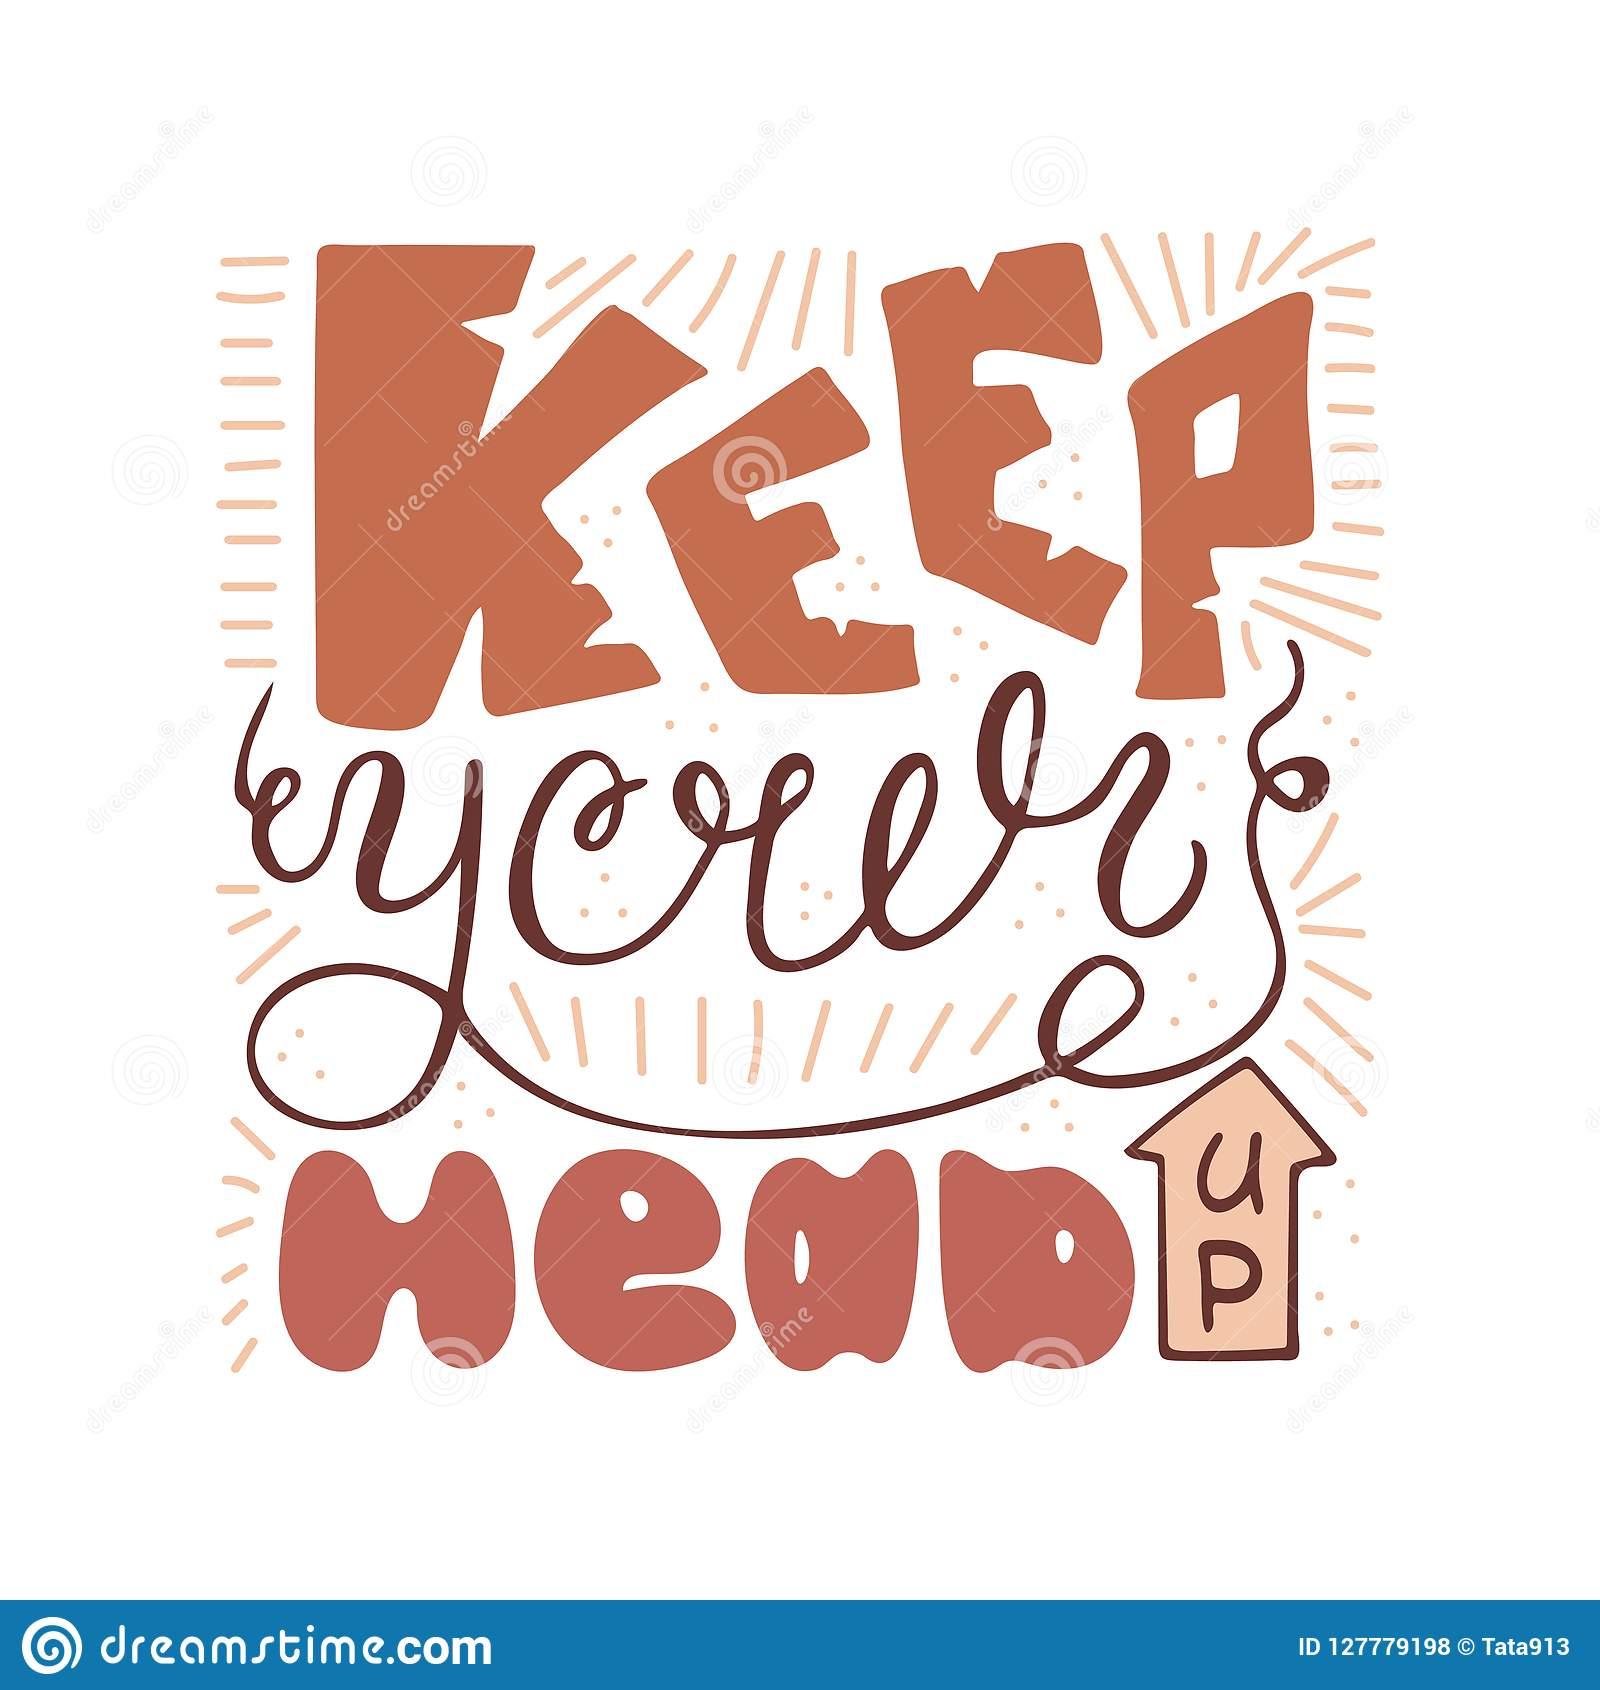 Keep Your Head Up Handwritten Unique Quote For Design Stock Vector